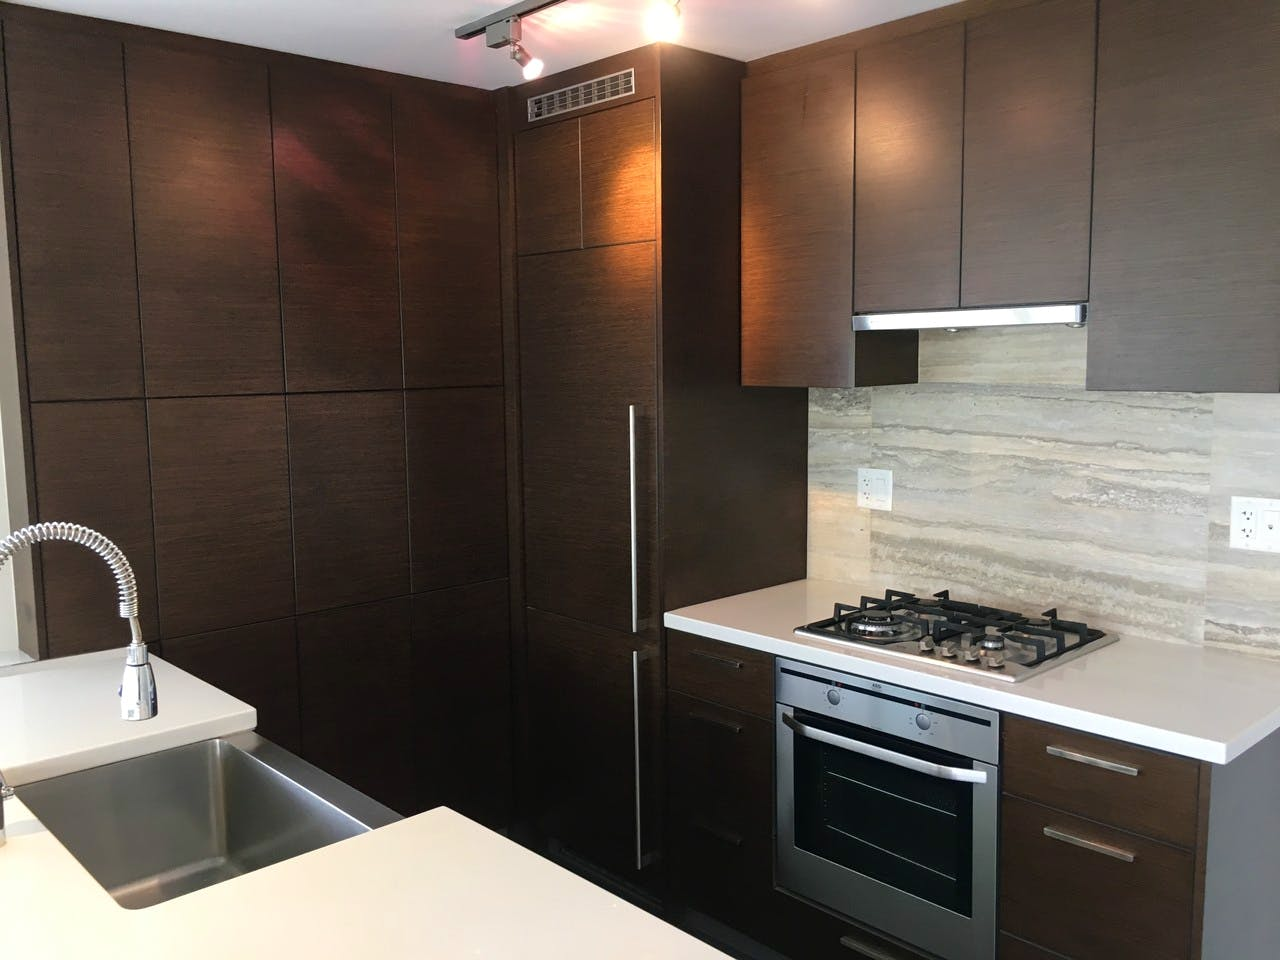 Dolce Tower Vancouver 2 Bedroom Apartment - Kitchen